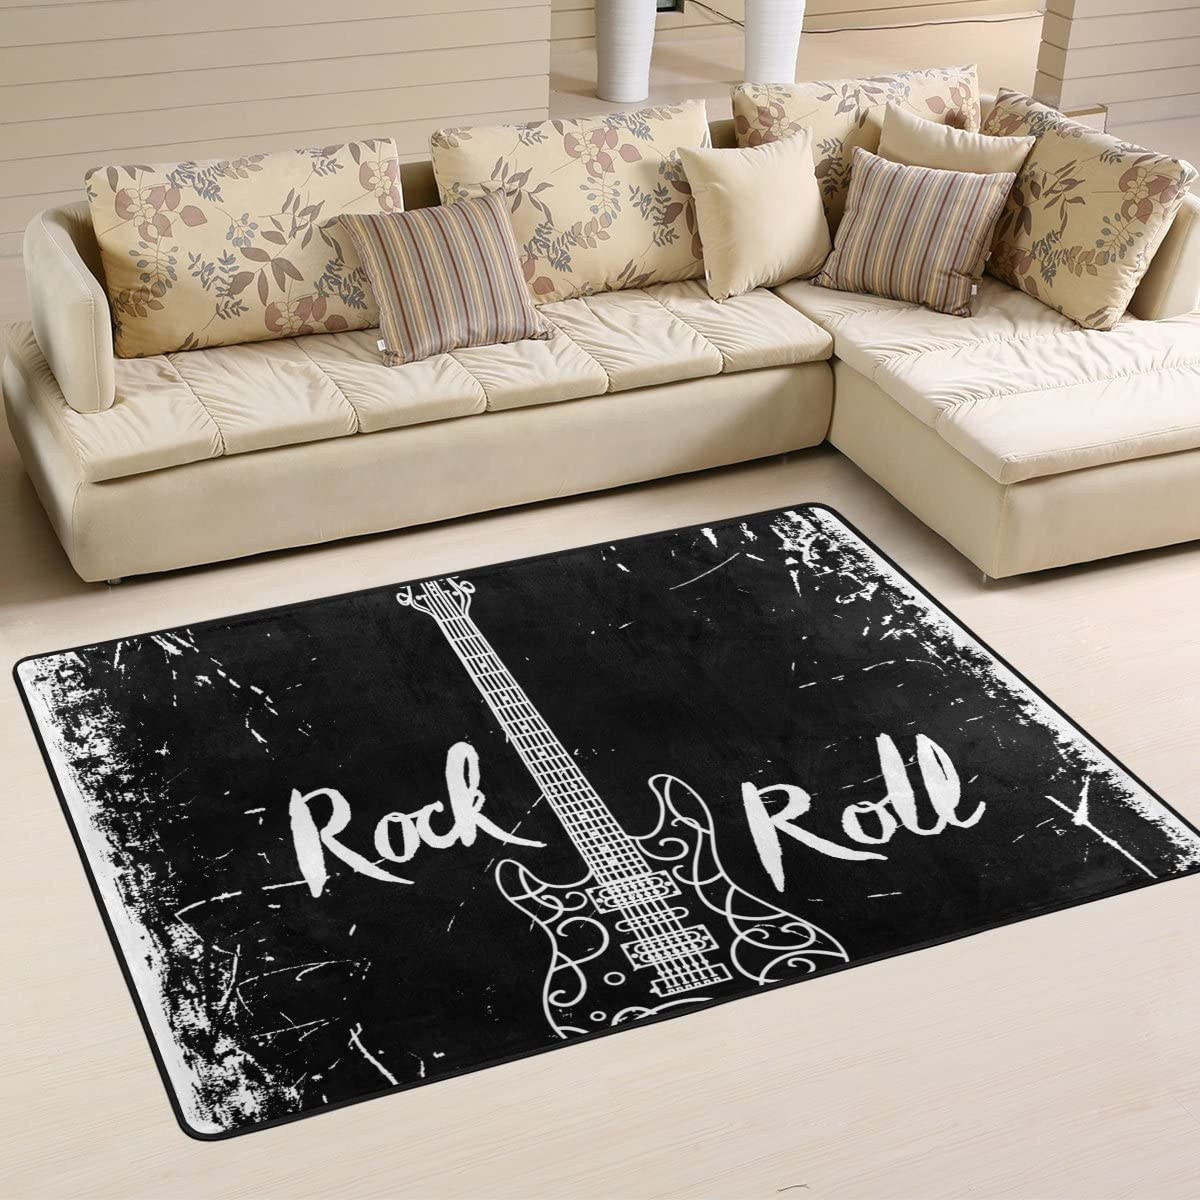 LORVIES Electric Guitar and Lettering Rock Roll On Grunge Background Area Rug Carpet Non-Slip Floor Mat Doormats for Living Room Bedroom 72 x 48 inches